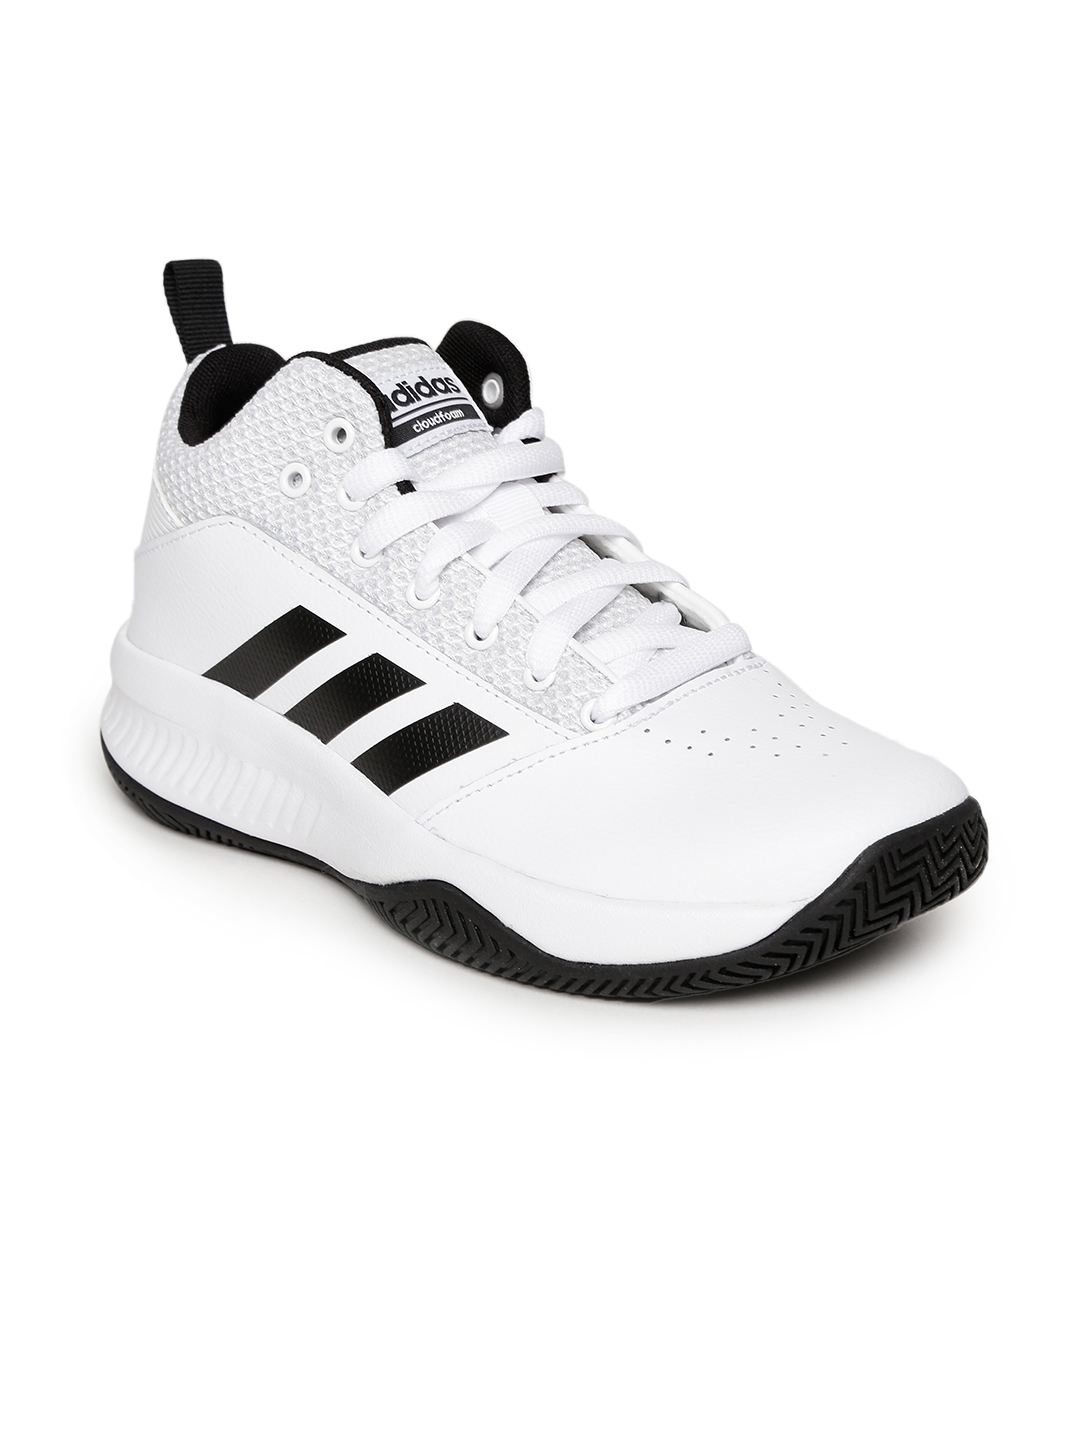 7aa07af42a06 Buy ADIDAS Kids White CF ILATION 2.0 K Basketball Shoes - Sports ...